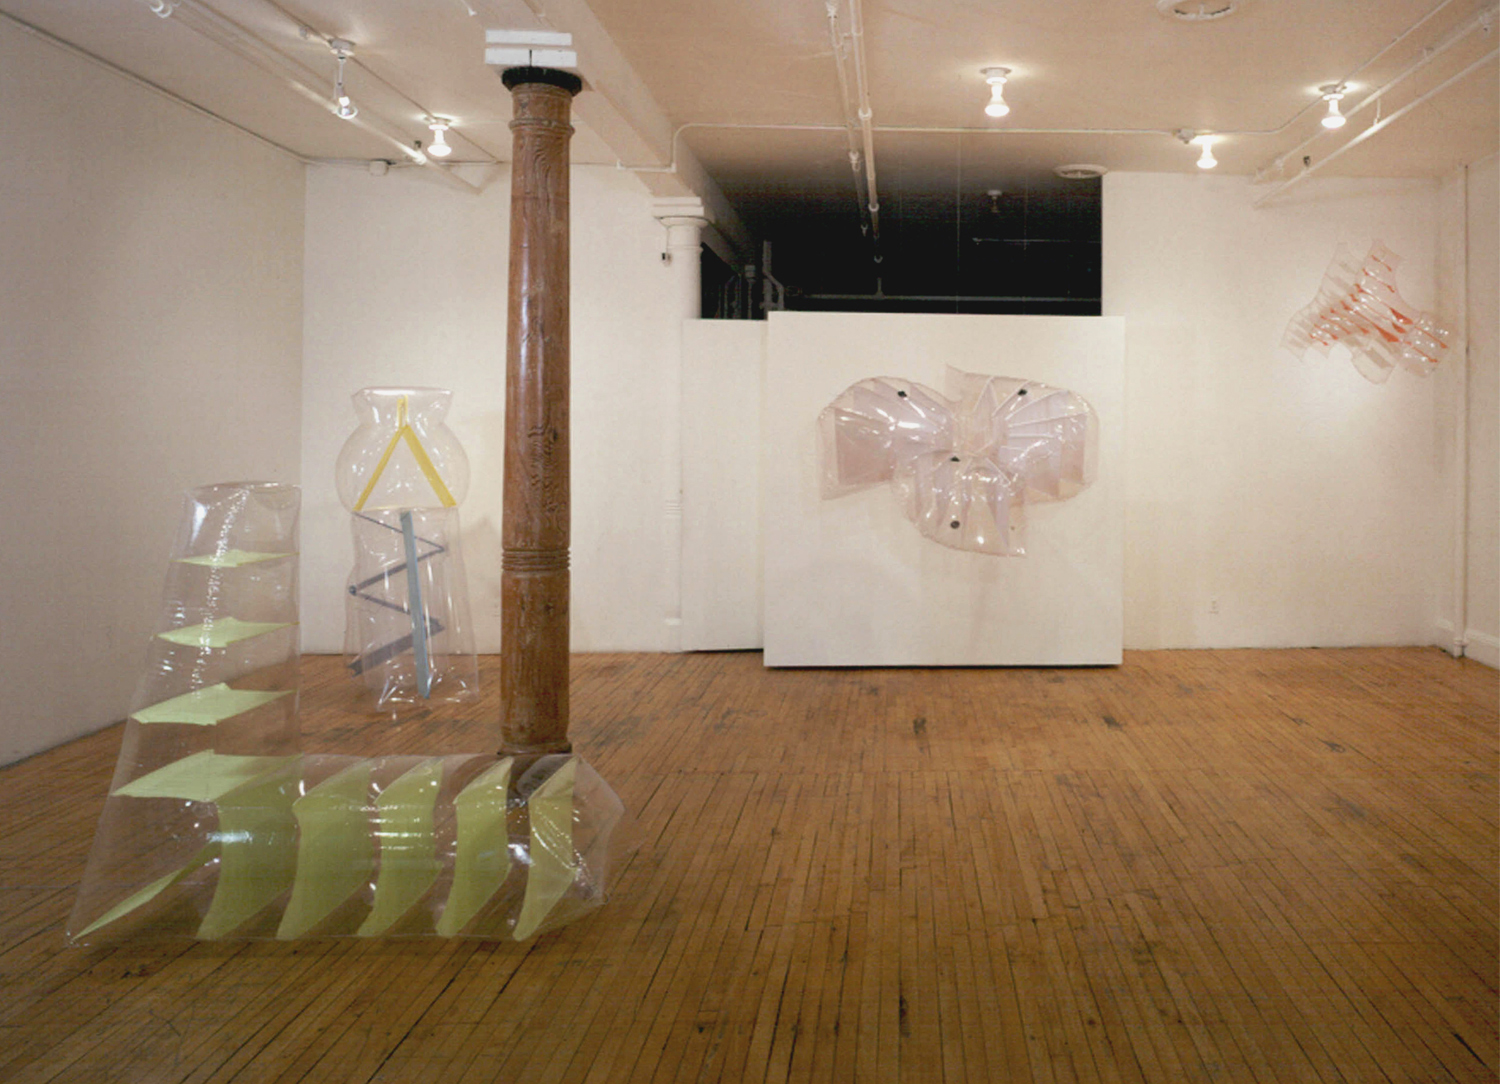 2002 installation view Kagan Martos Gallery, NY